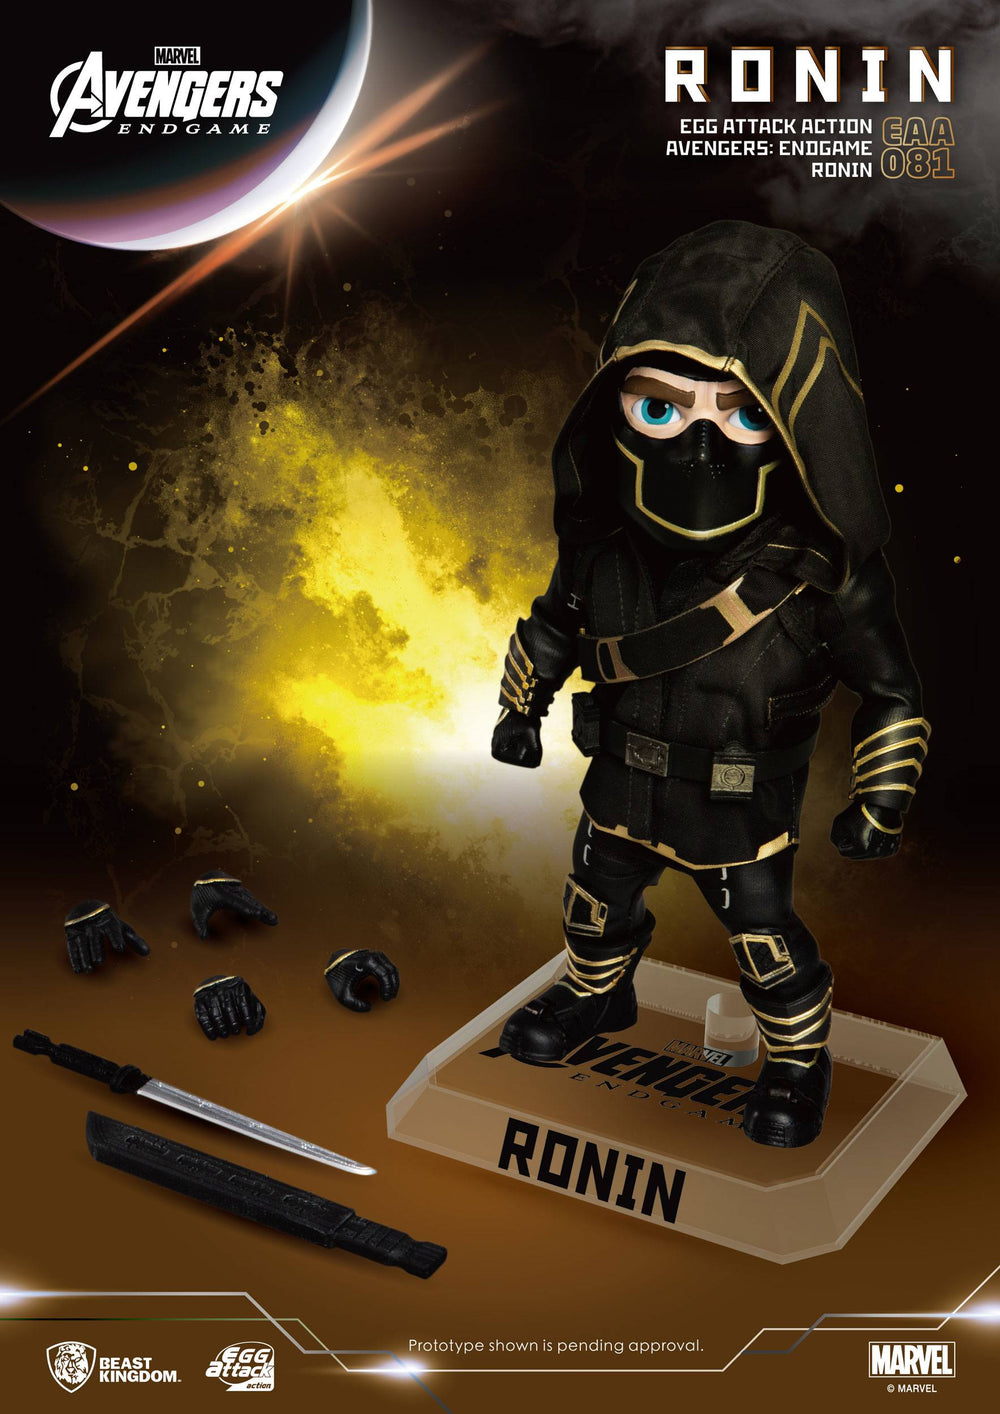 Beast Kingdom Avengers: Endgame Ronin Egg Attack Action Figure